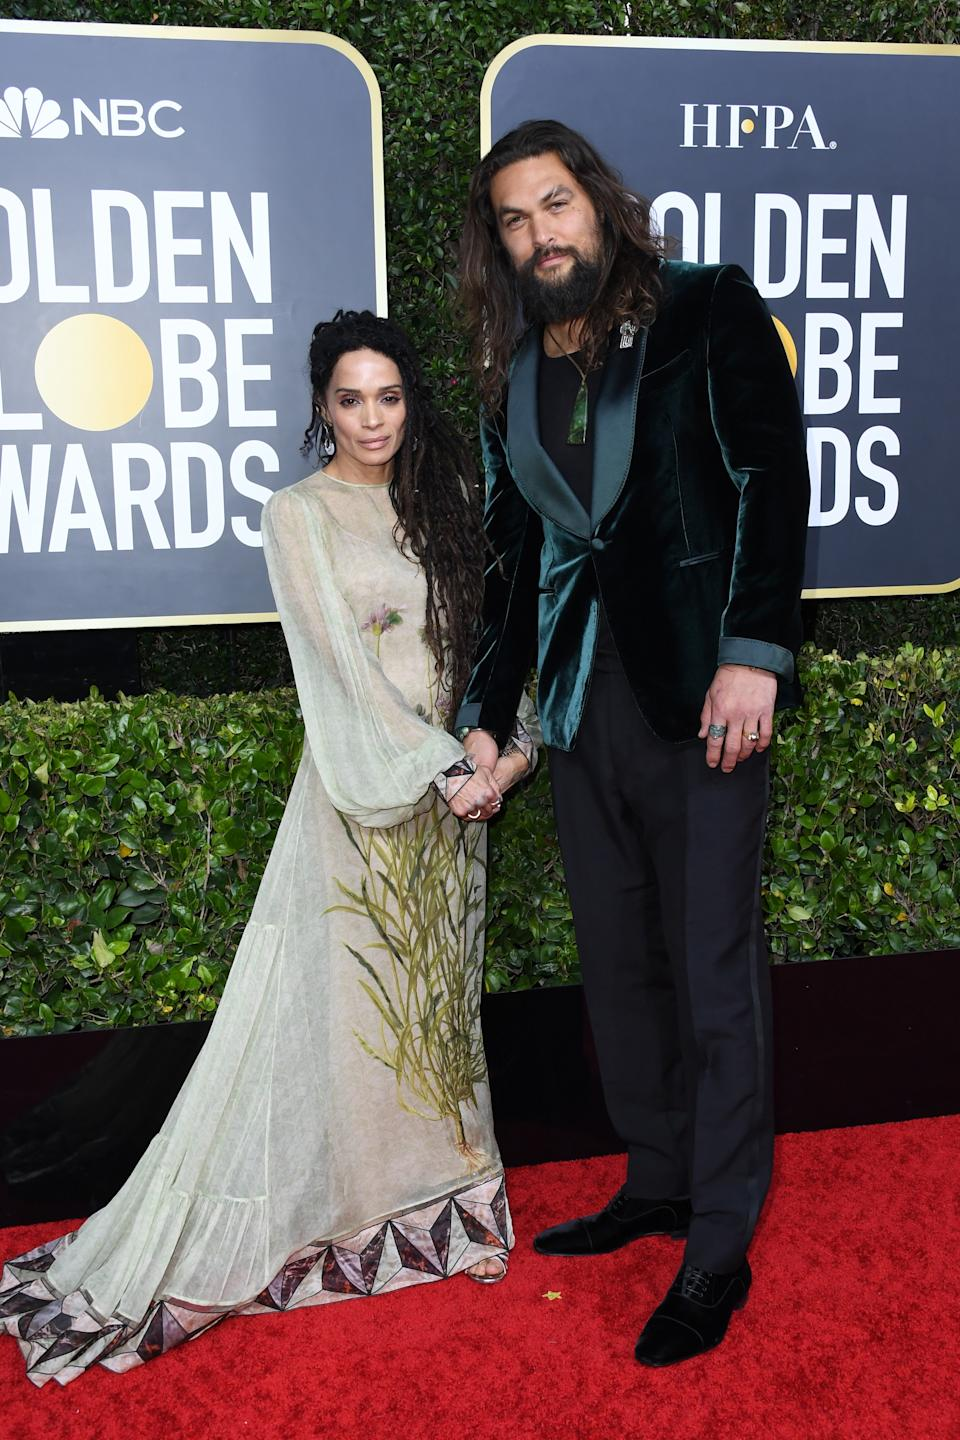 "<h1 class=""title"">Lisa Bonet in Fernando Jorge earrings and Andrea Fohrman ring, and Jason Momoa in Tom Ford, Valentino, Christian Louboutin shoes, and Cartier jewelry</h1><cite class=""credit"">Photo: Getty Images</cite>"